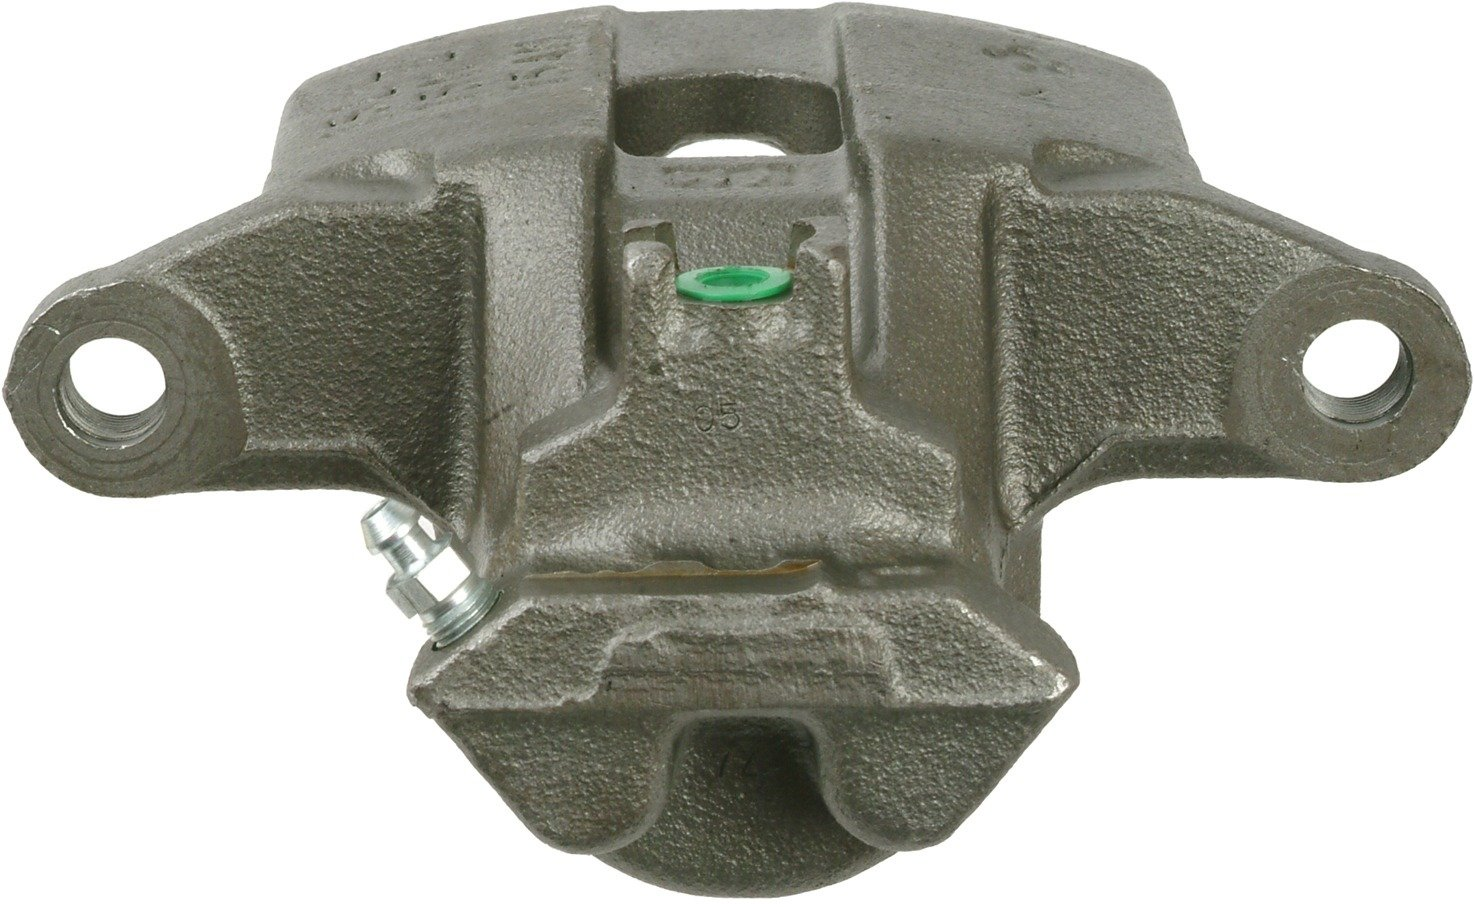 Cardone 18-8030 Remanufactured Domestic Friction Ready (Unloaded) Brake Caliper by A1 Cardone